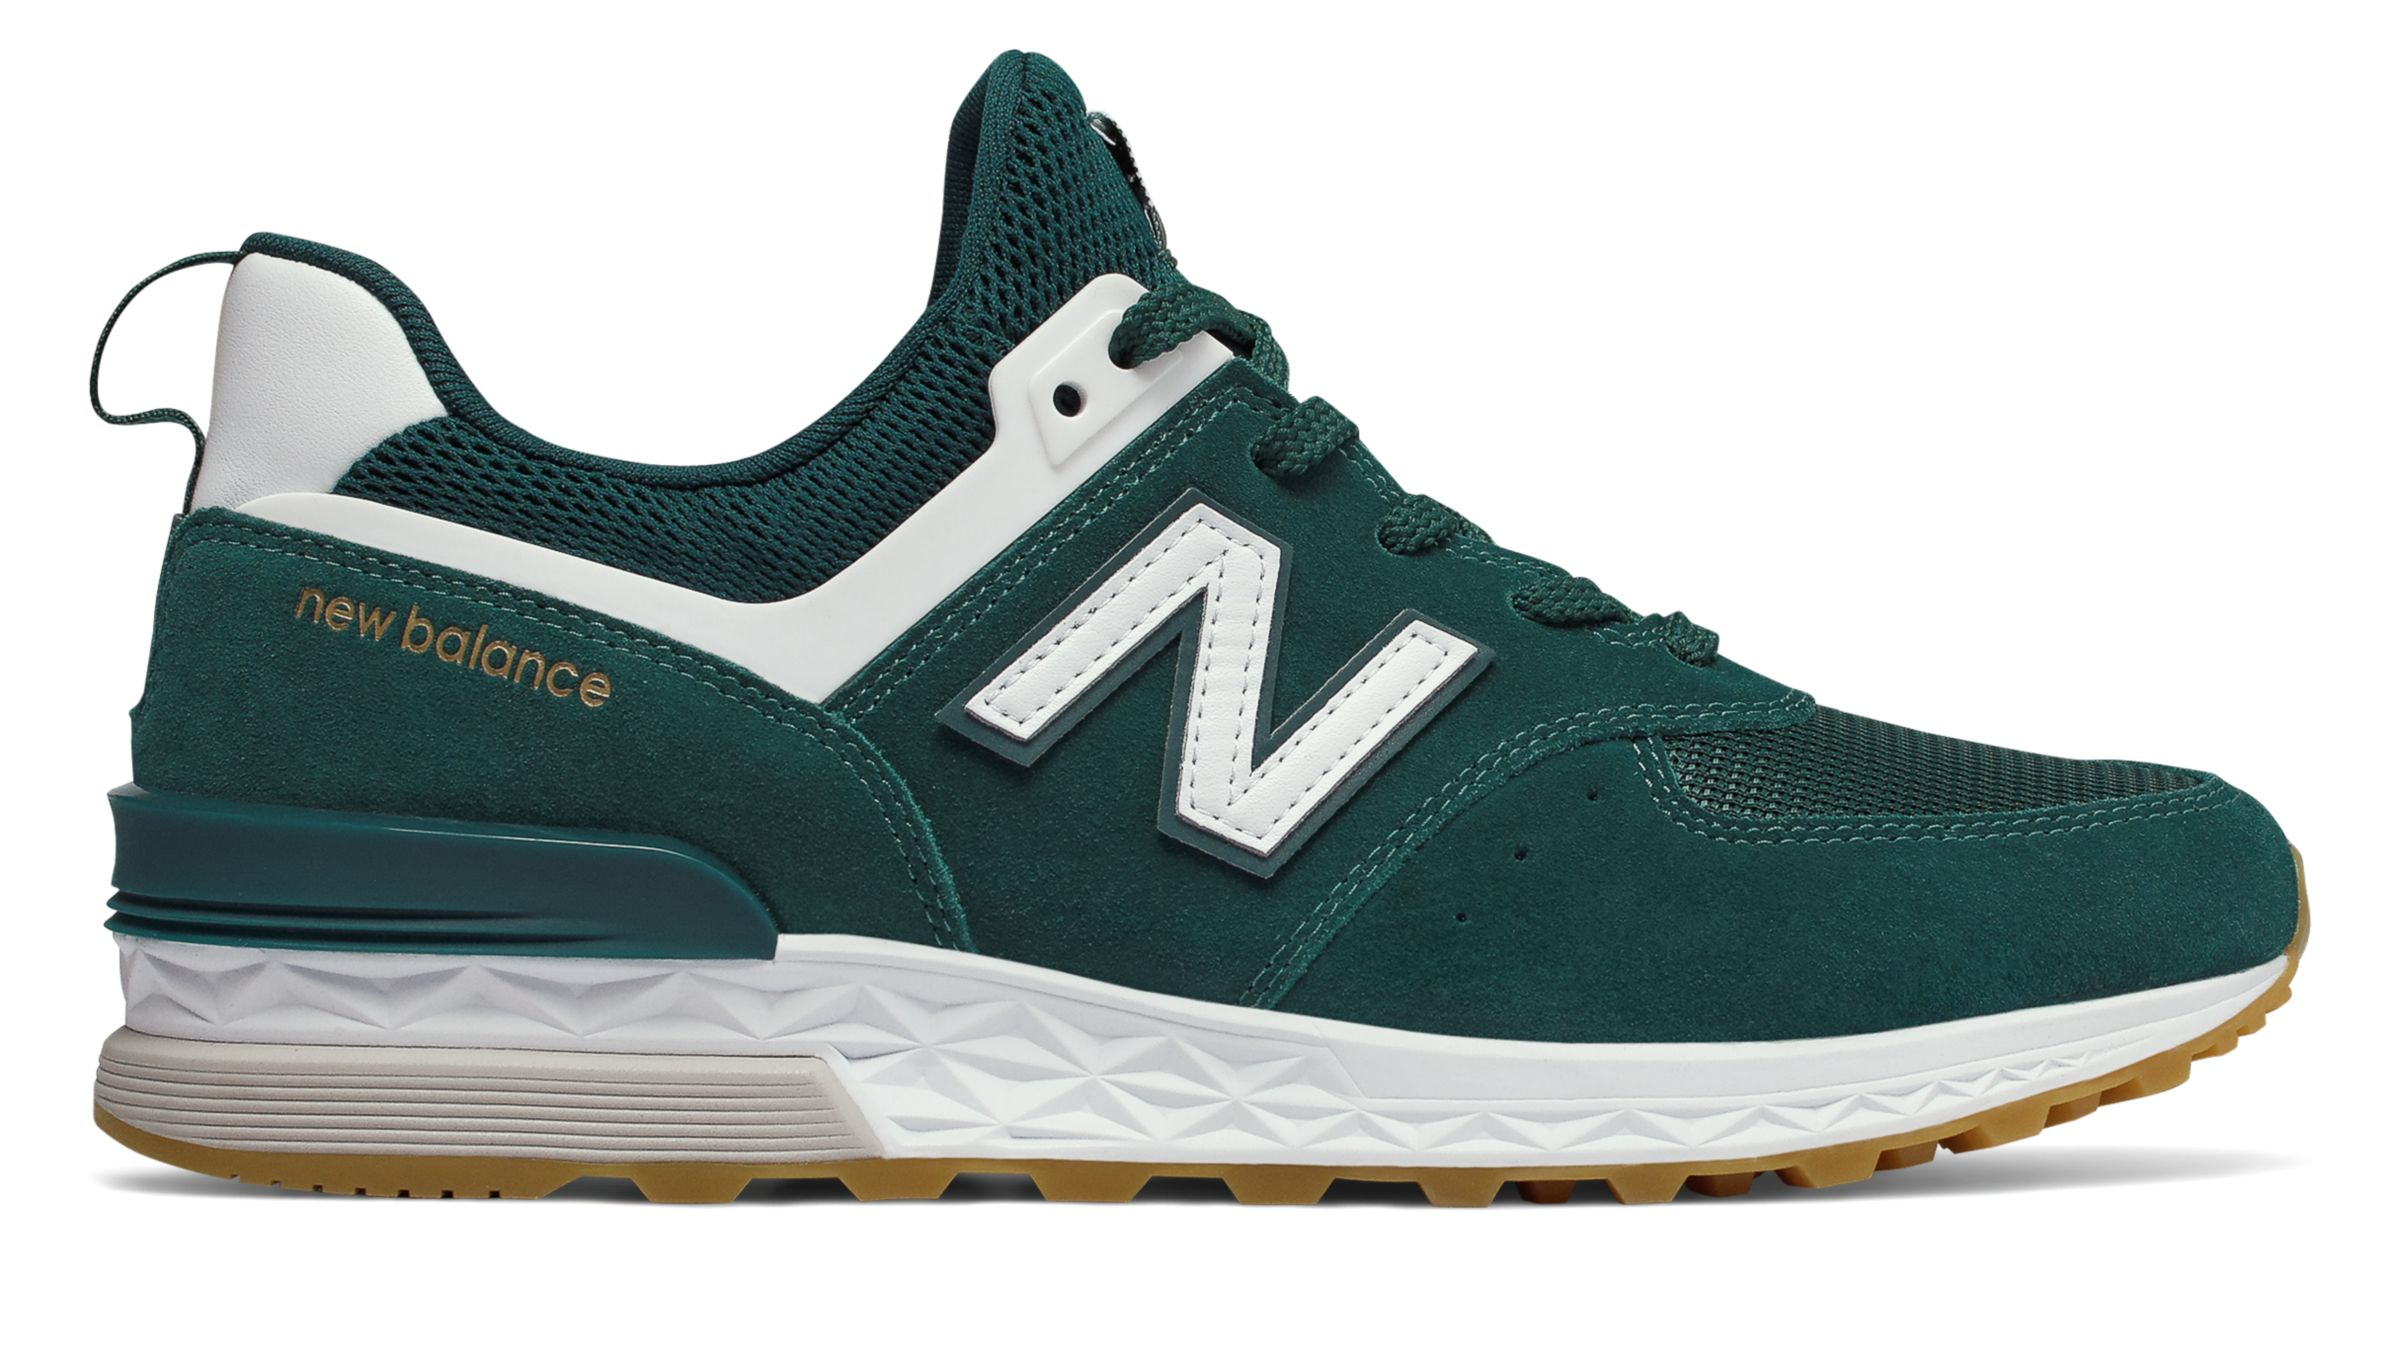 Details about New Balance Men's 574 Sport Shoes Green With White